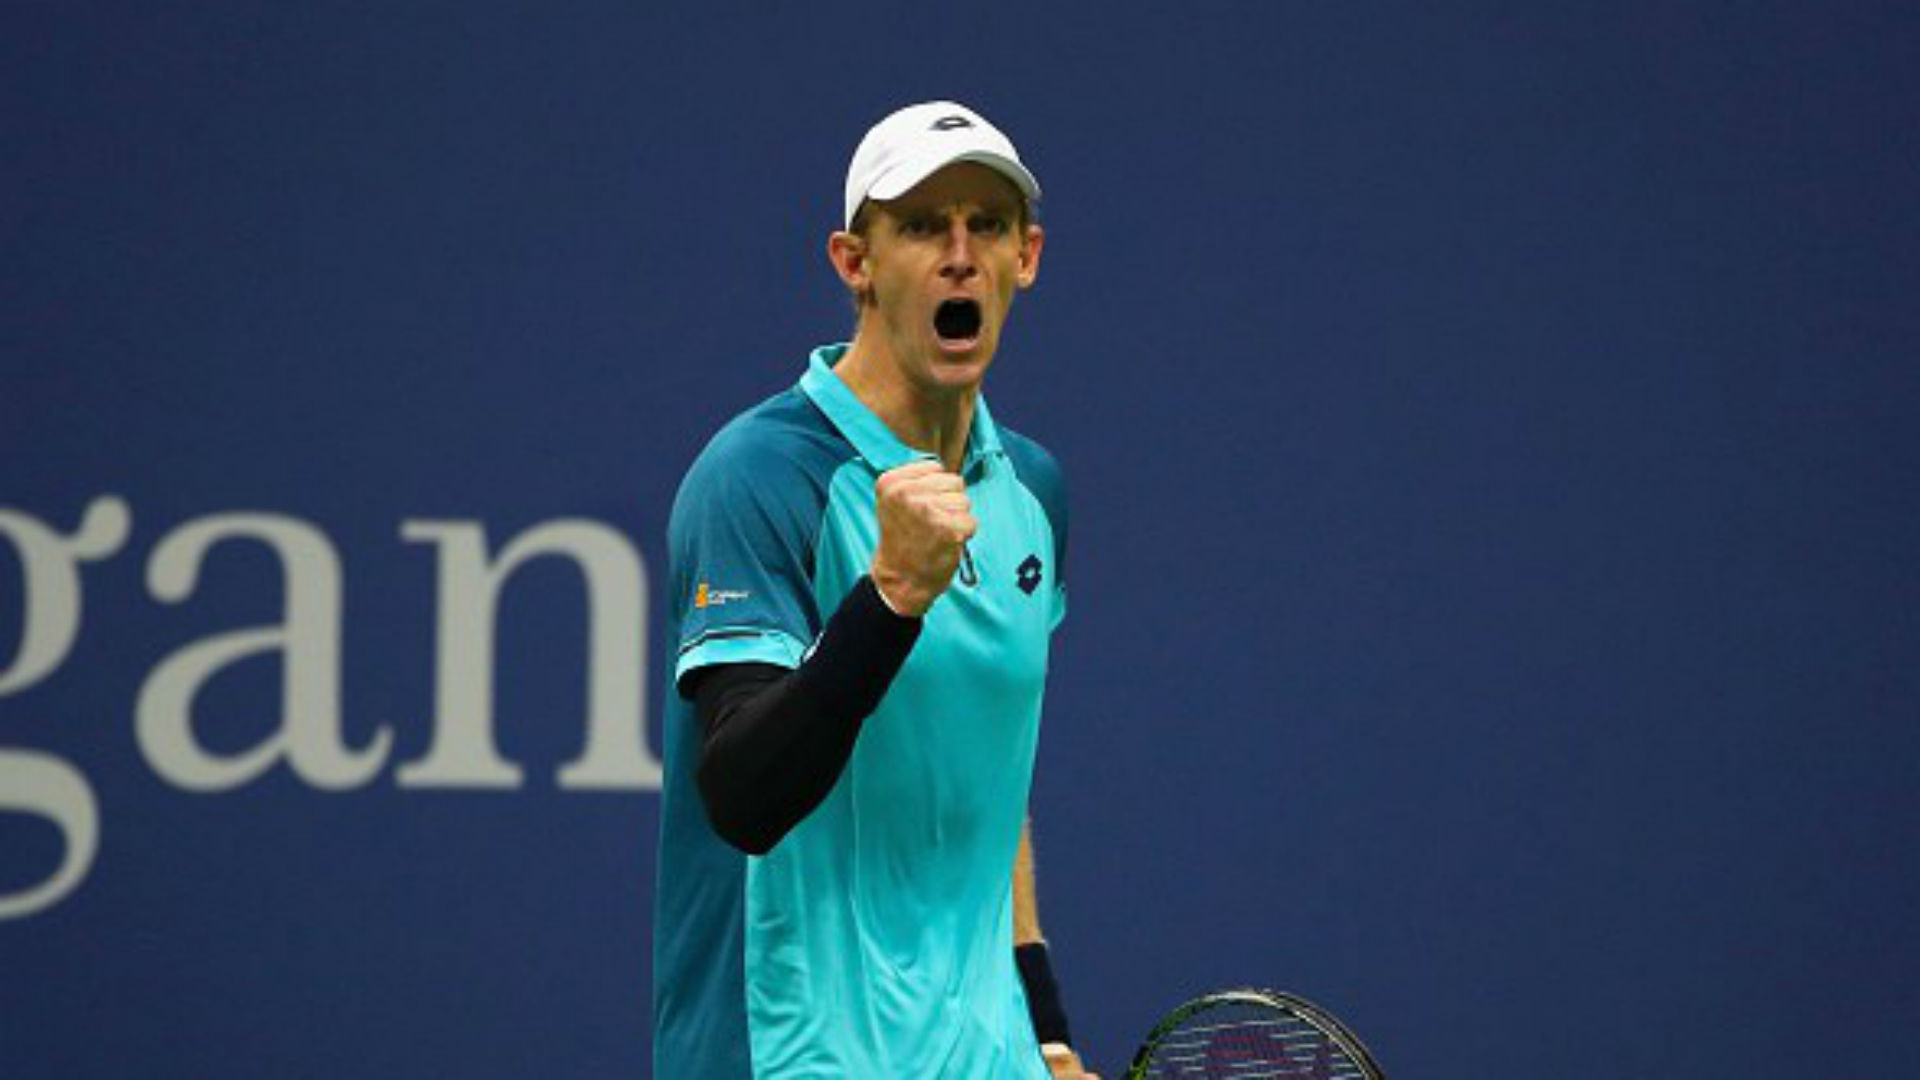 Novak Djokovic faces Kevin Anderson in the final